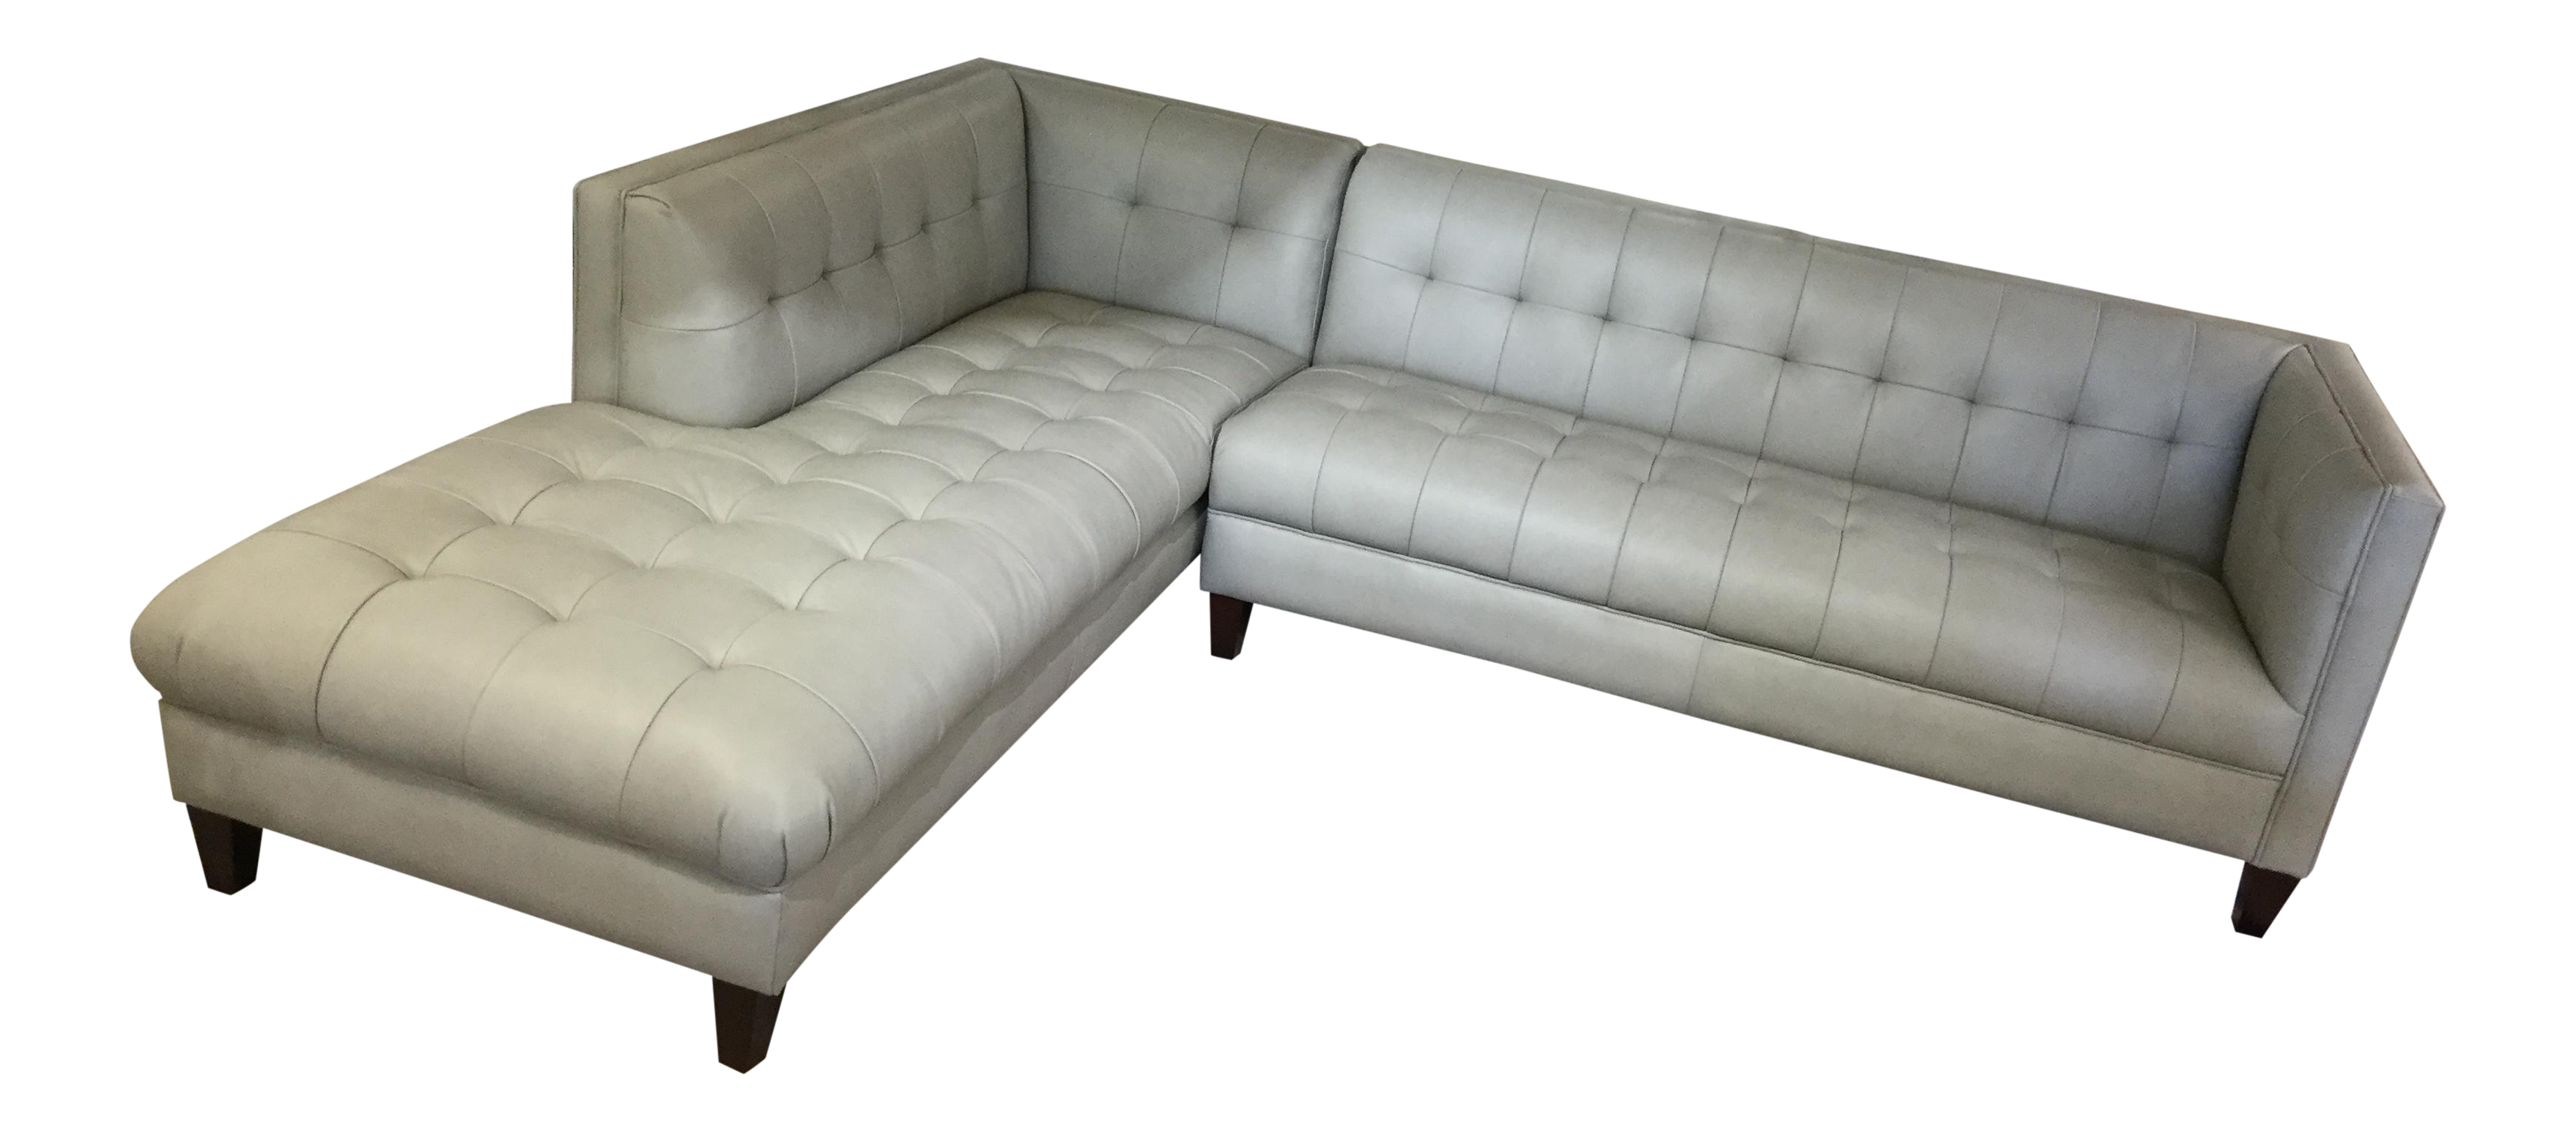 Superb Danish Modern Style Tufted Gray Leather Sectional Sofa W Chaise End Interior Design Ideas Gentotthenellocom